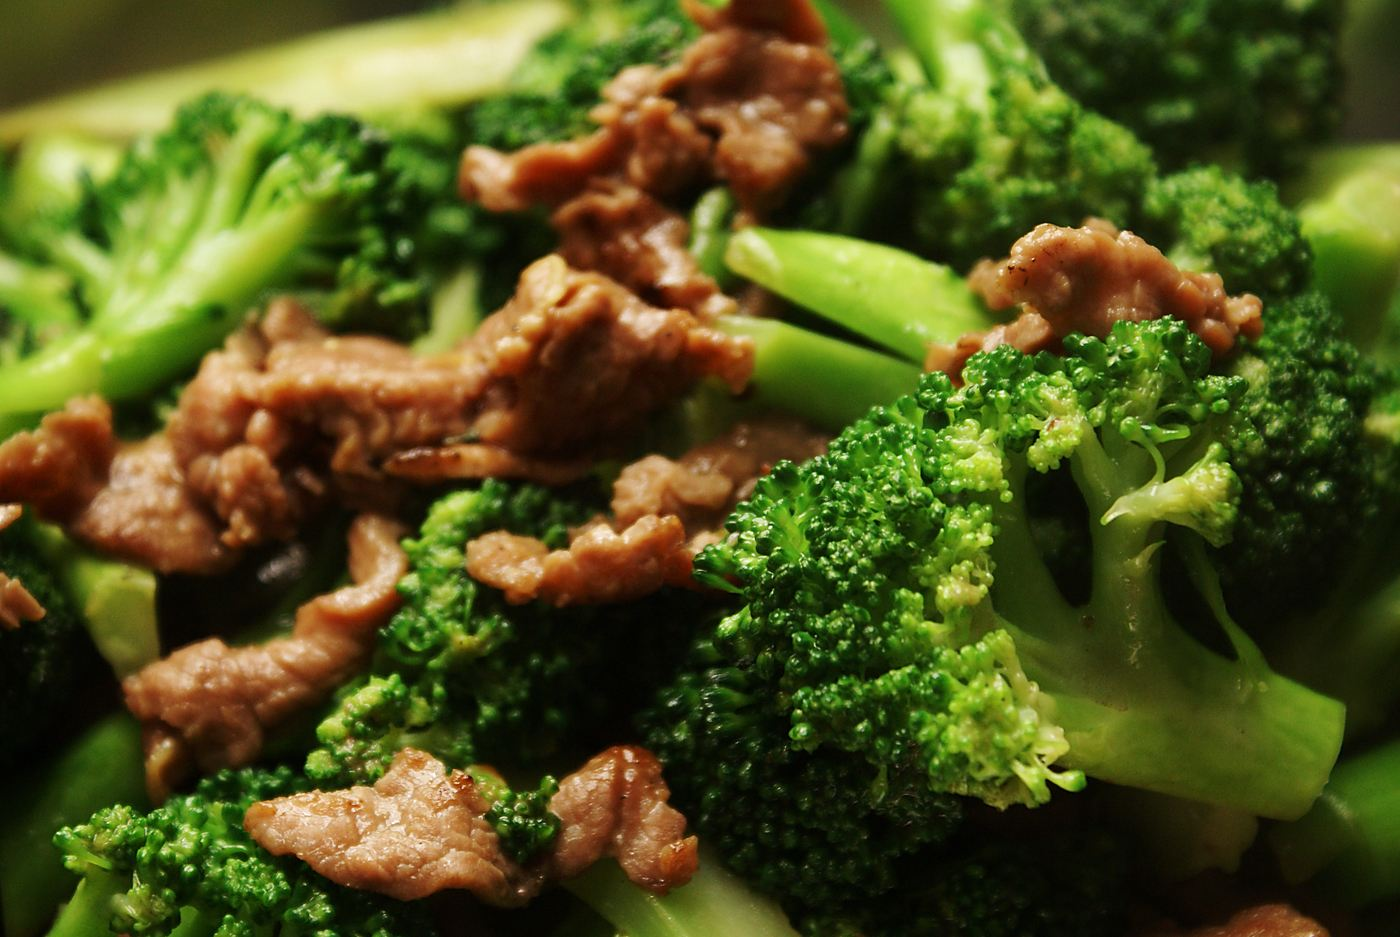 Broccoli and Beef The Healthiest Chinese Combination